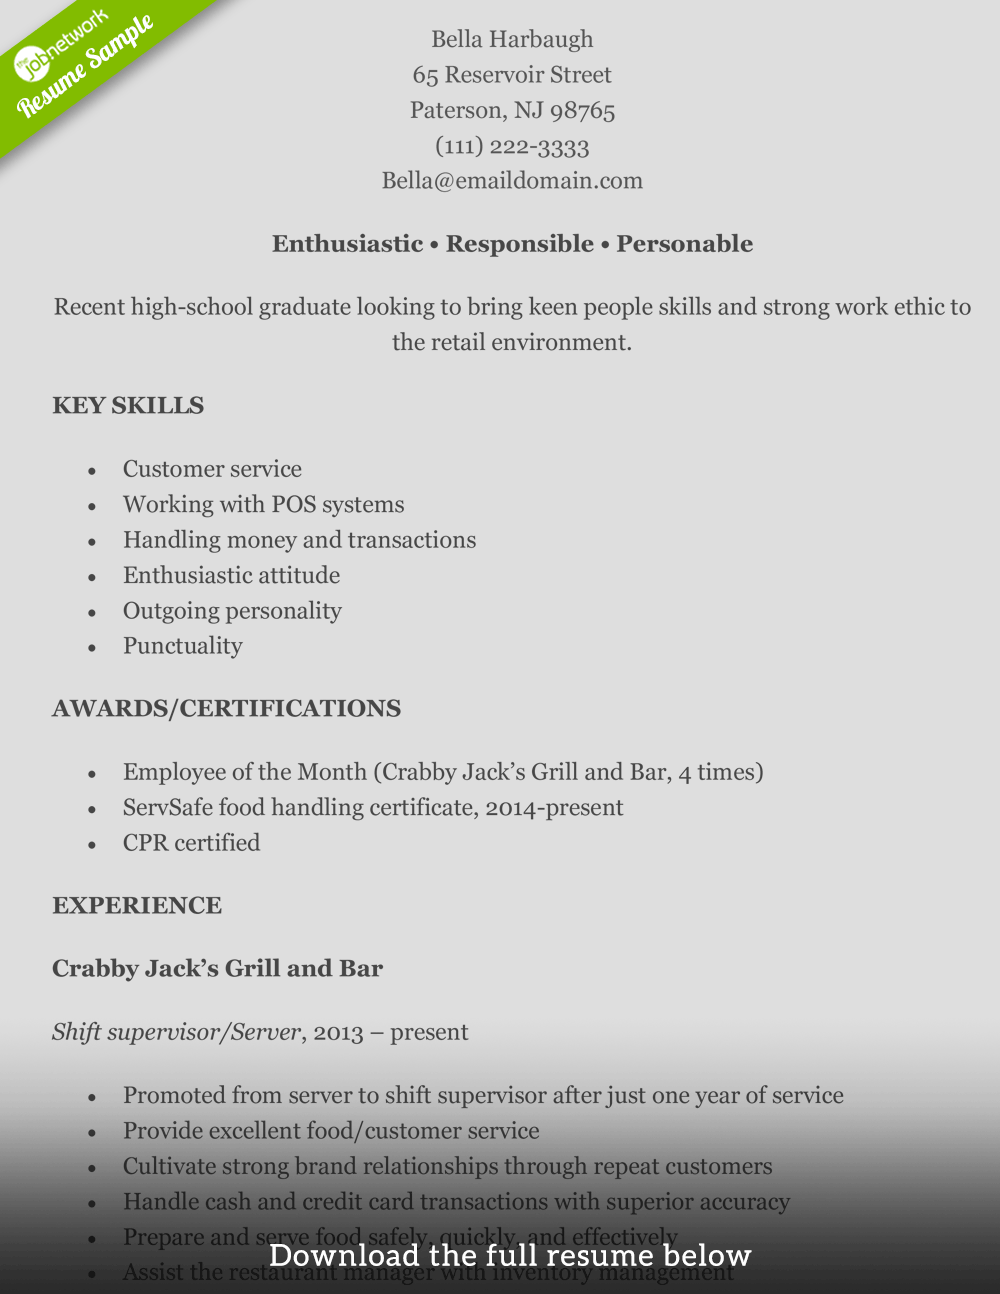 Retail Resume Bella  Retail Resumes Examples